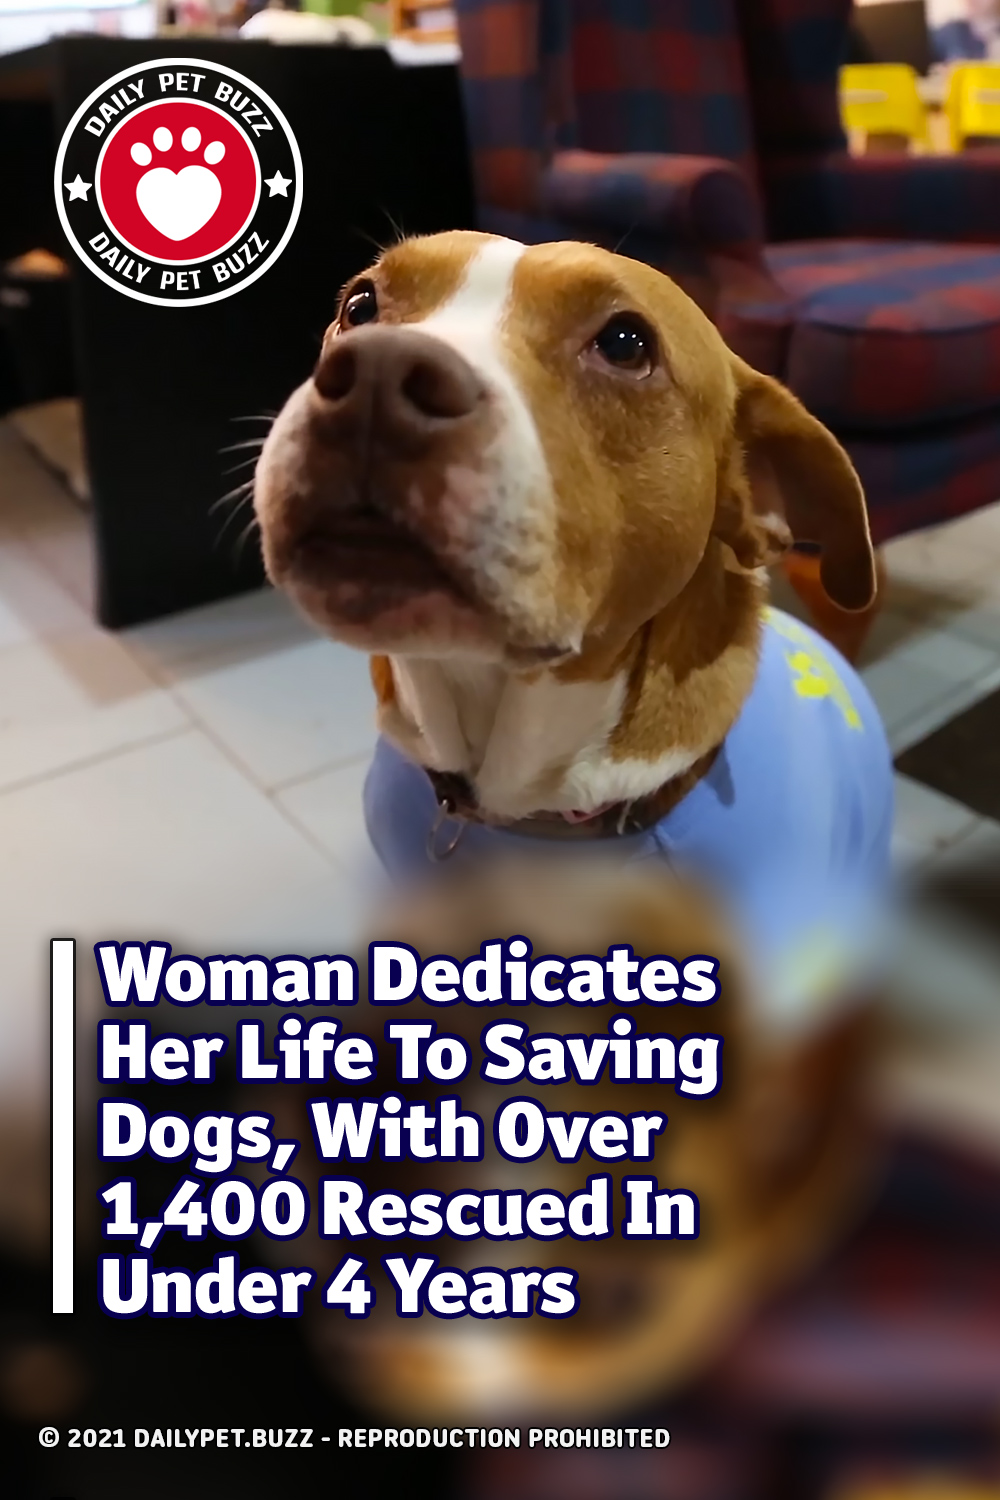 Woman Dedicates Her Life To Saving Dogs, With Over 1,400 Rescued In Under 4 Years